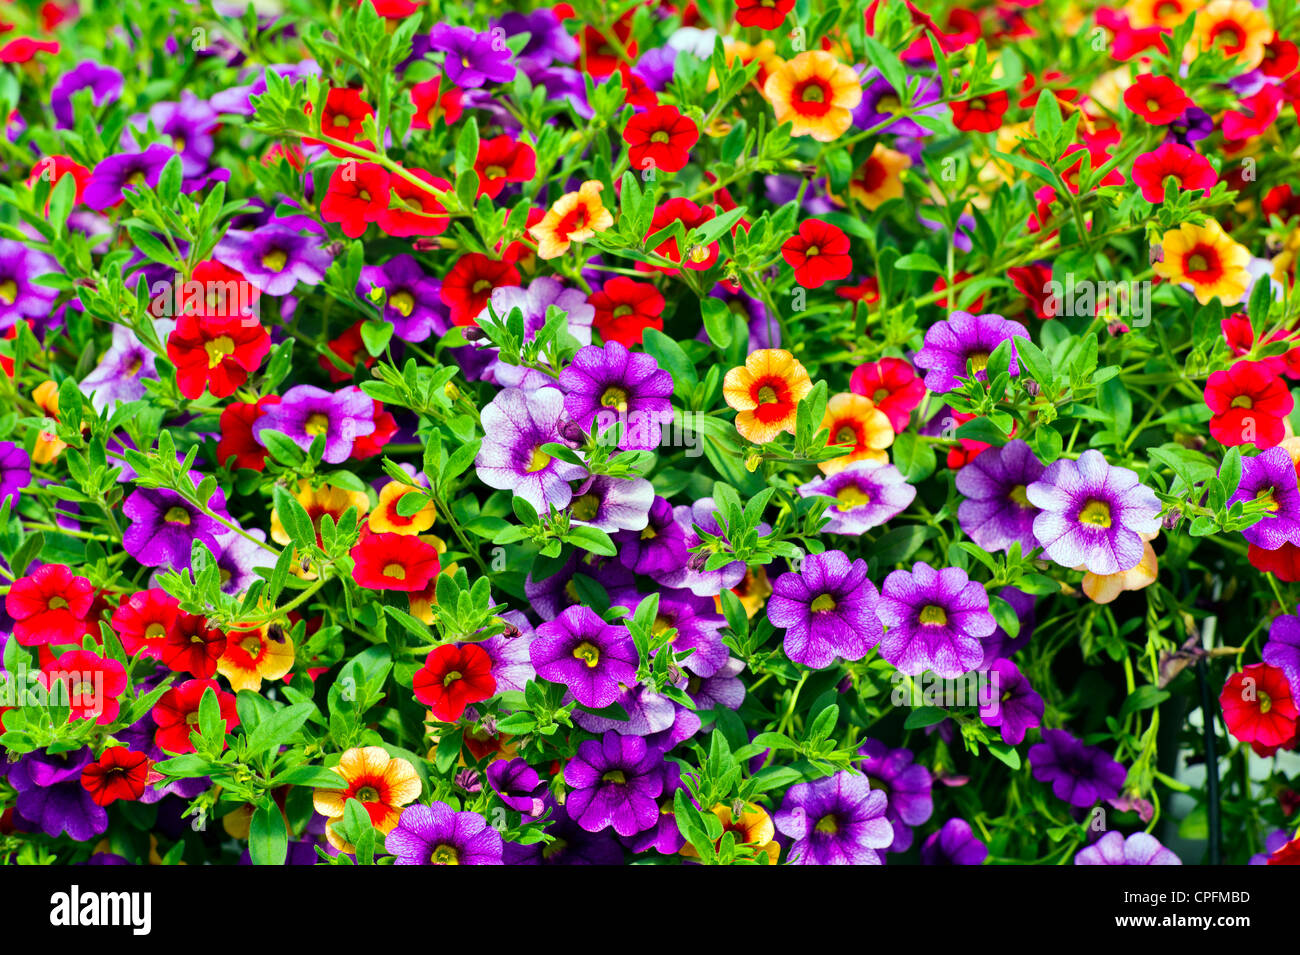 Fresh spring petunia flowers for sale at a small town nursery. - Stock Image